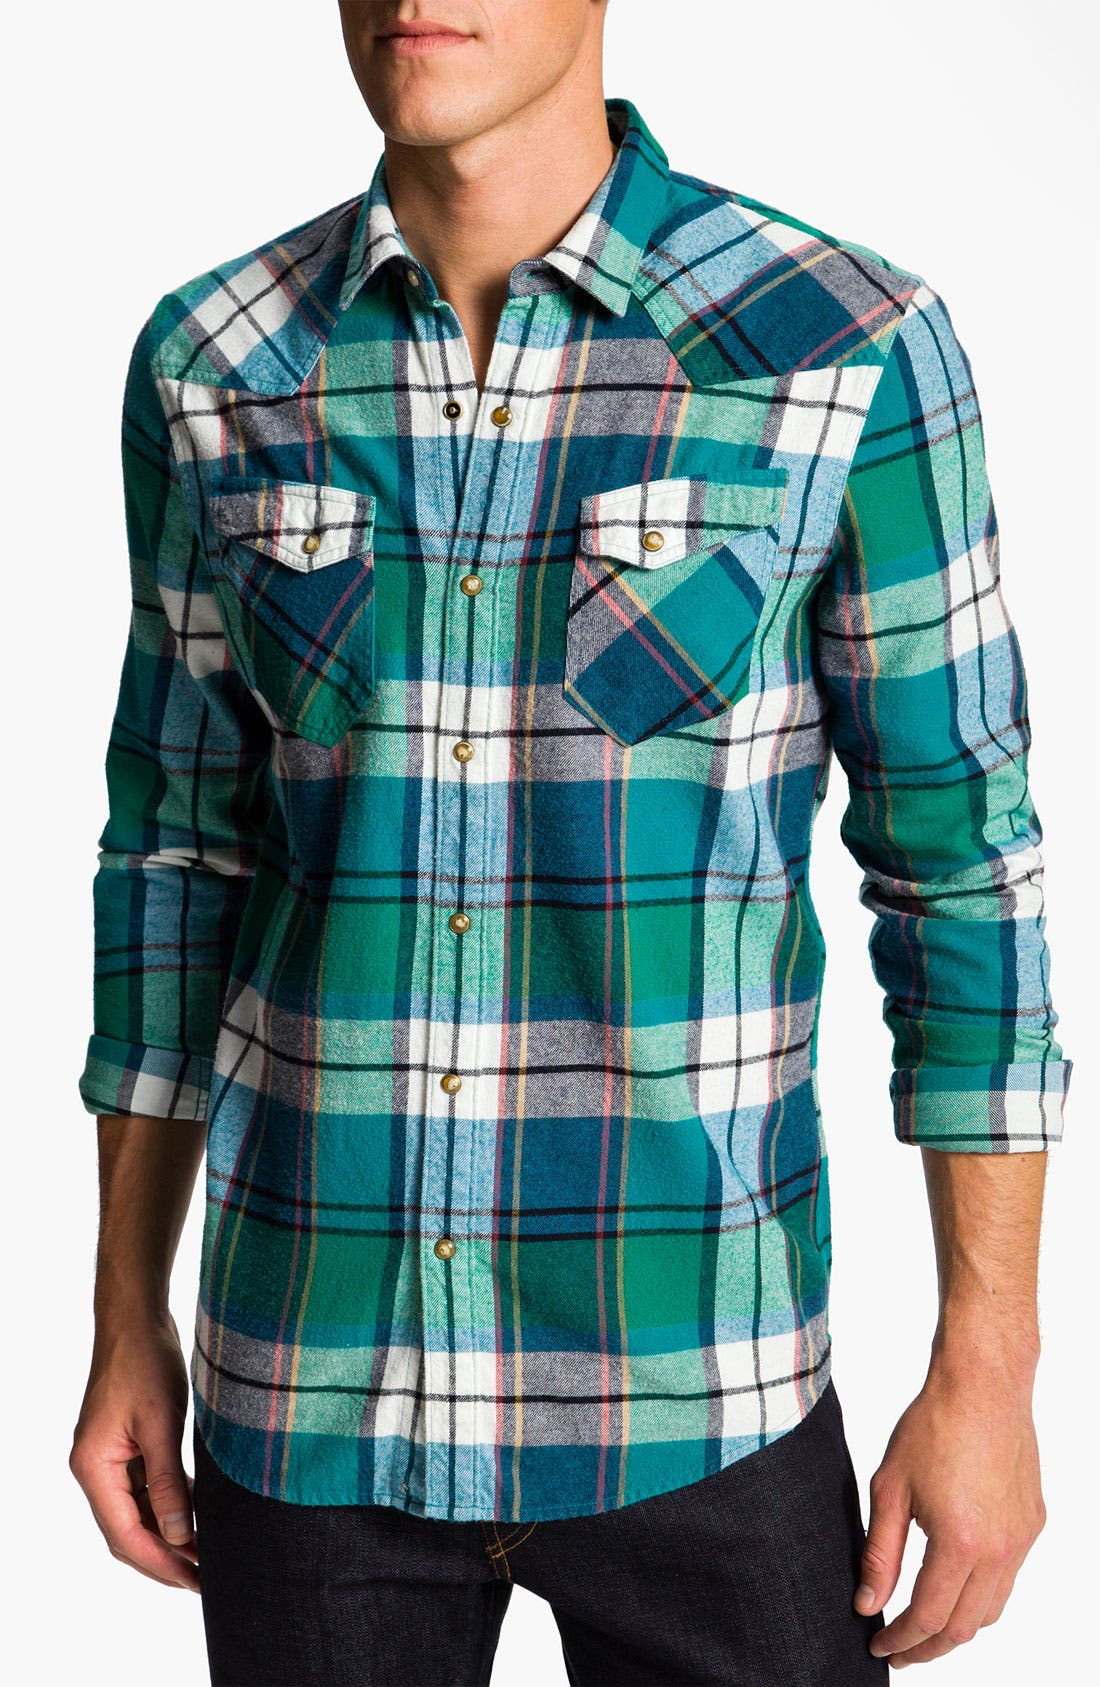 Alternate Image 1 Selected - The Rail by Public Opinion Cotton Flannel Shirt